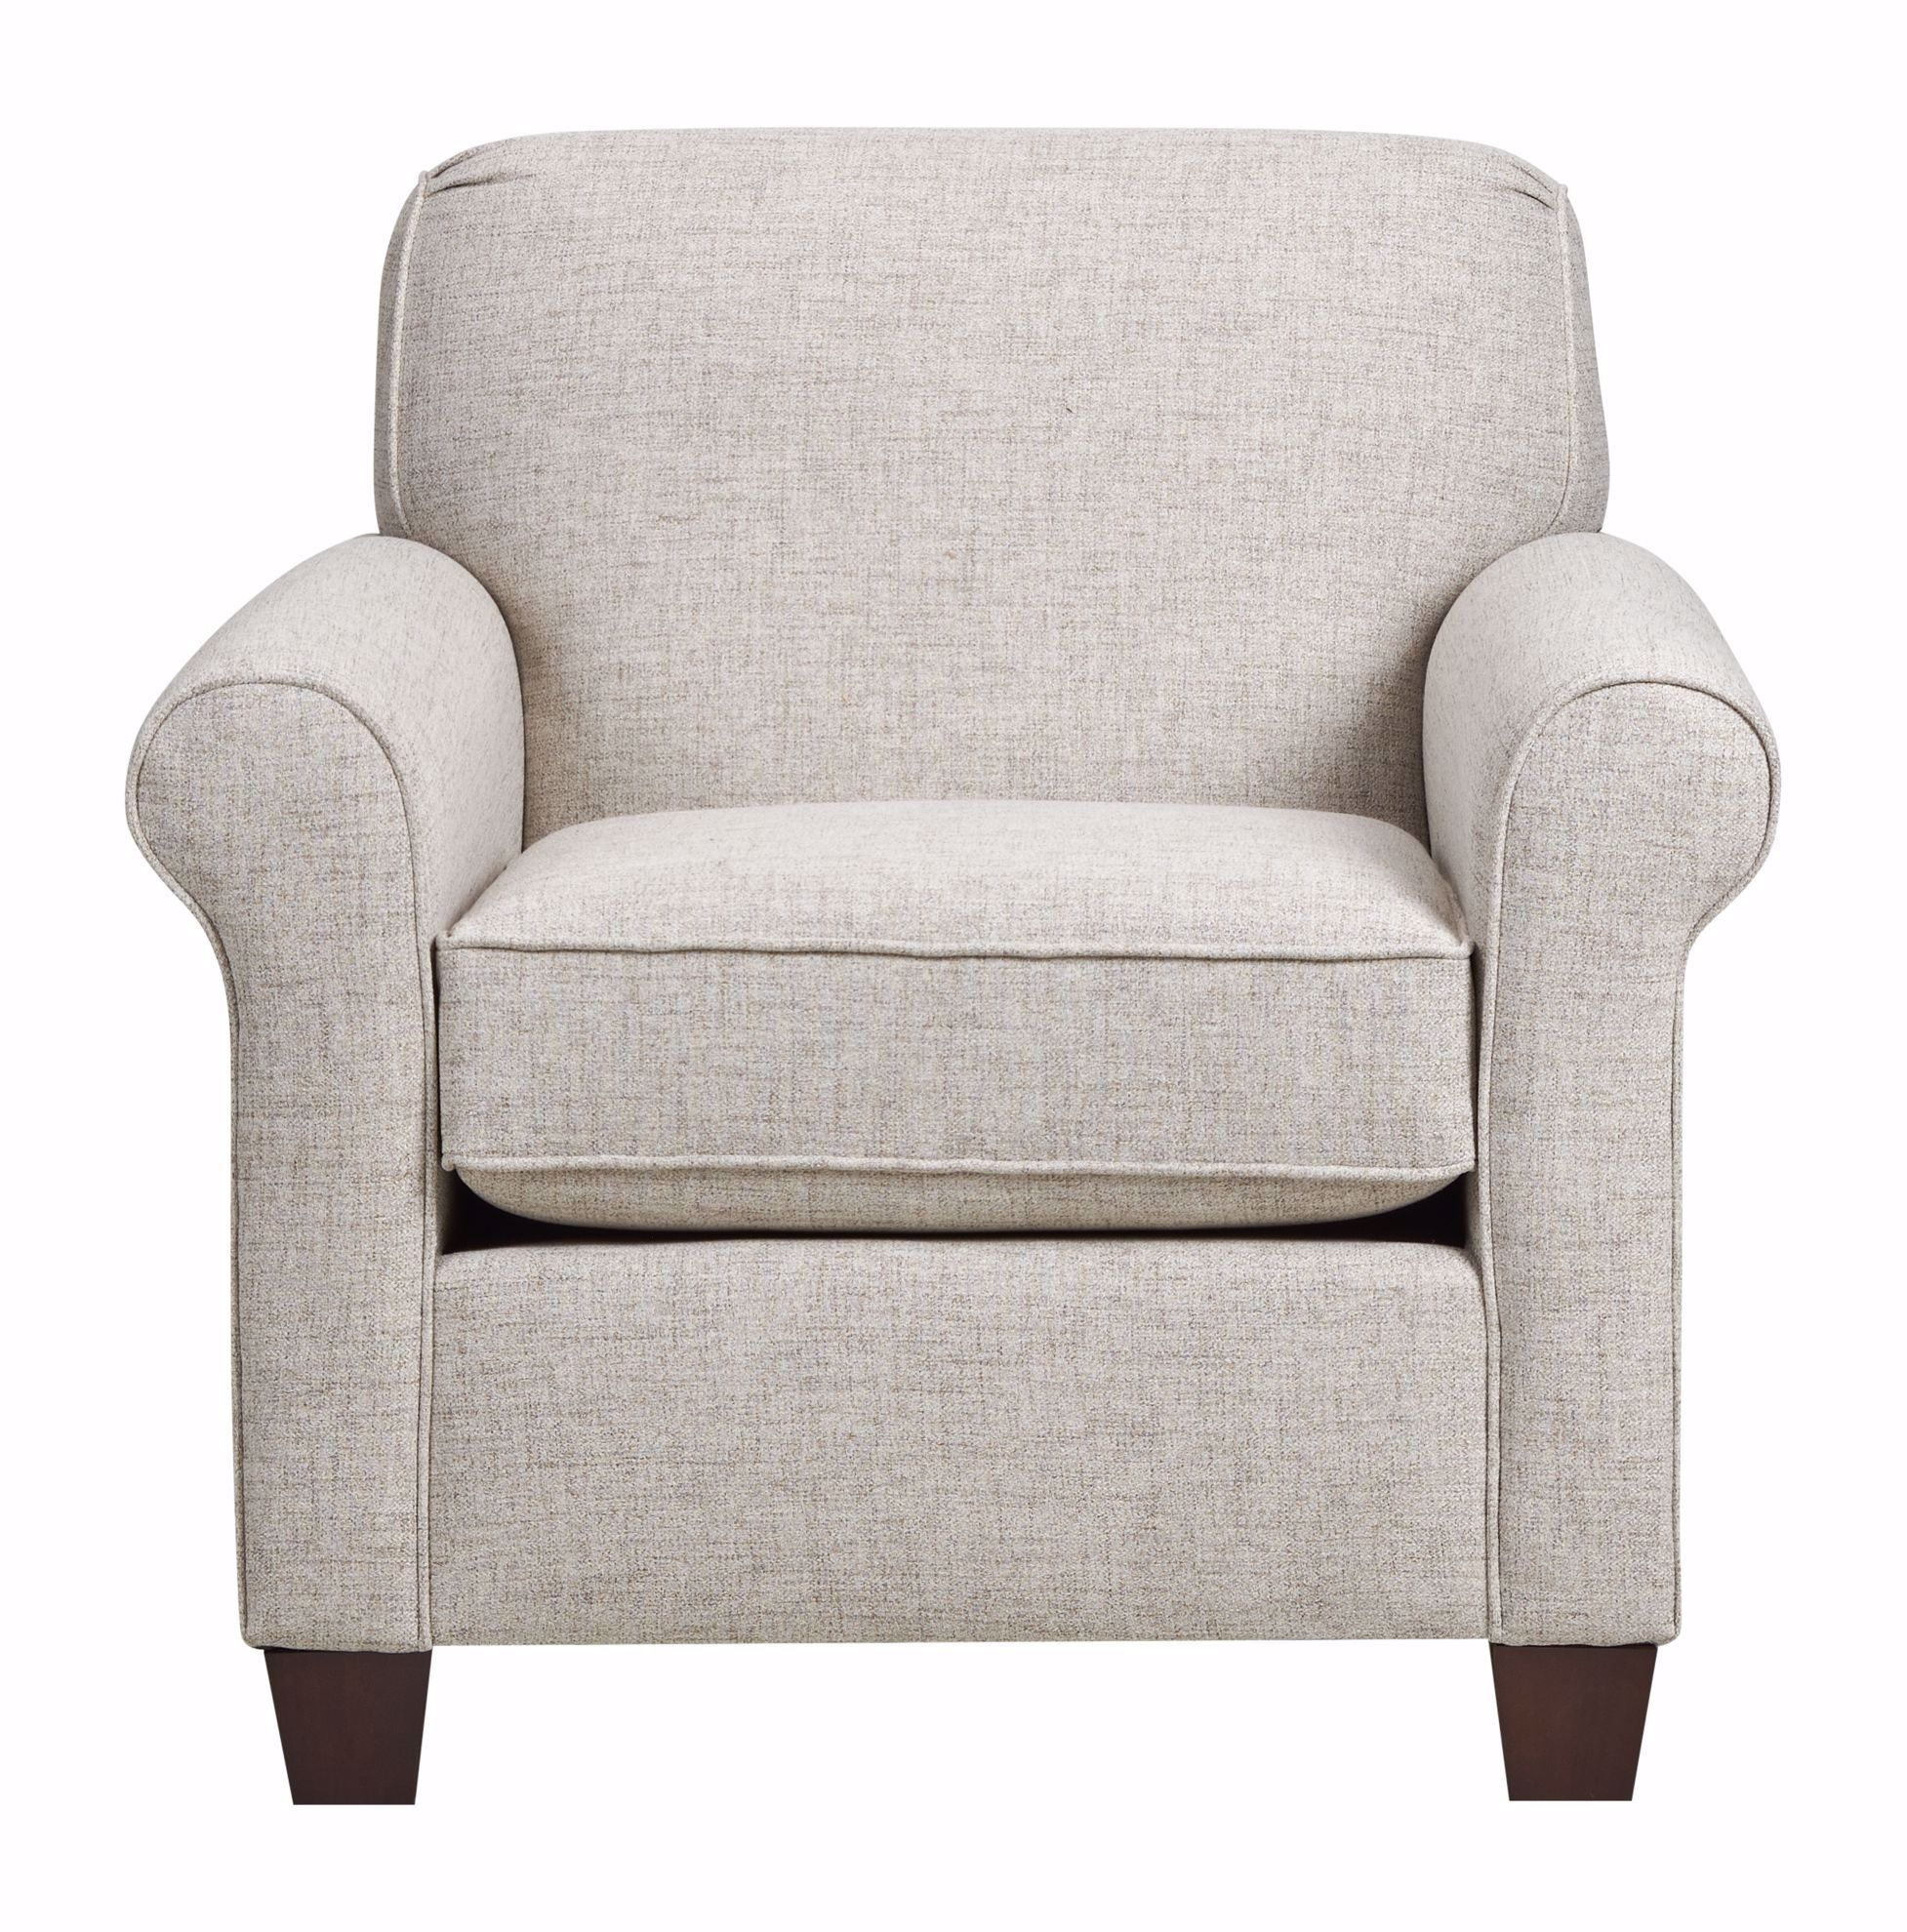 Picture of Hadley Linen Chair